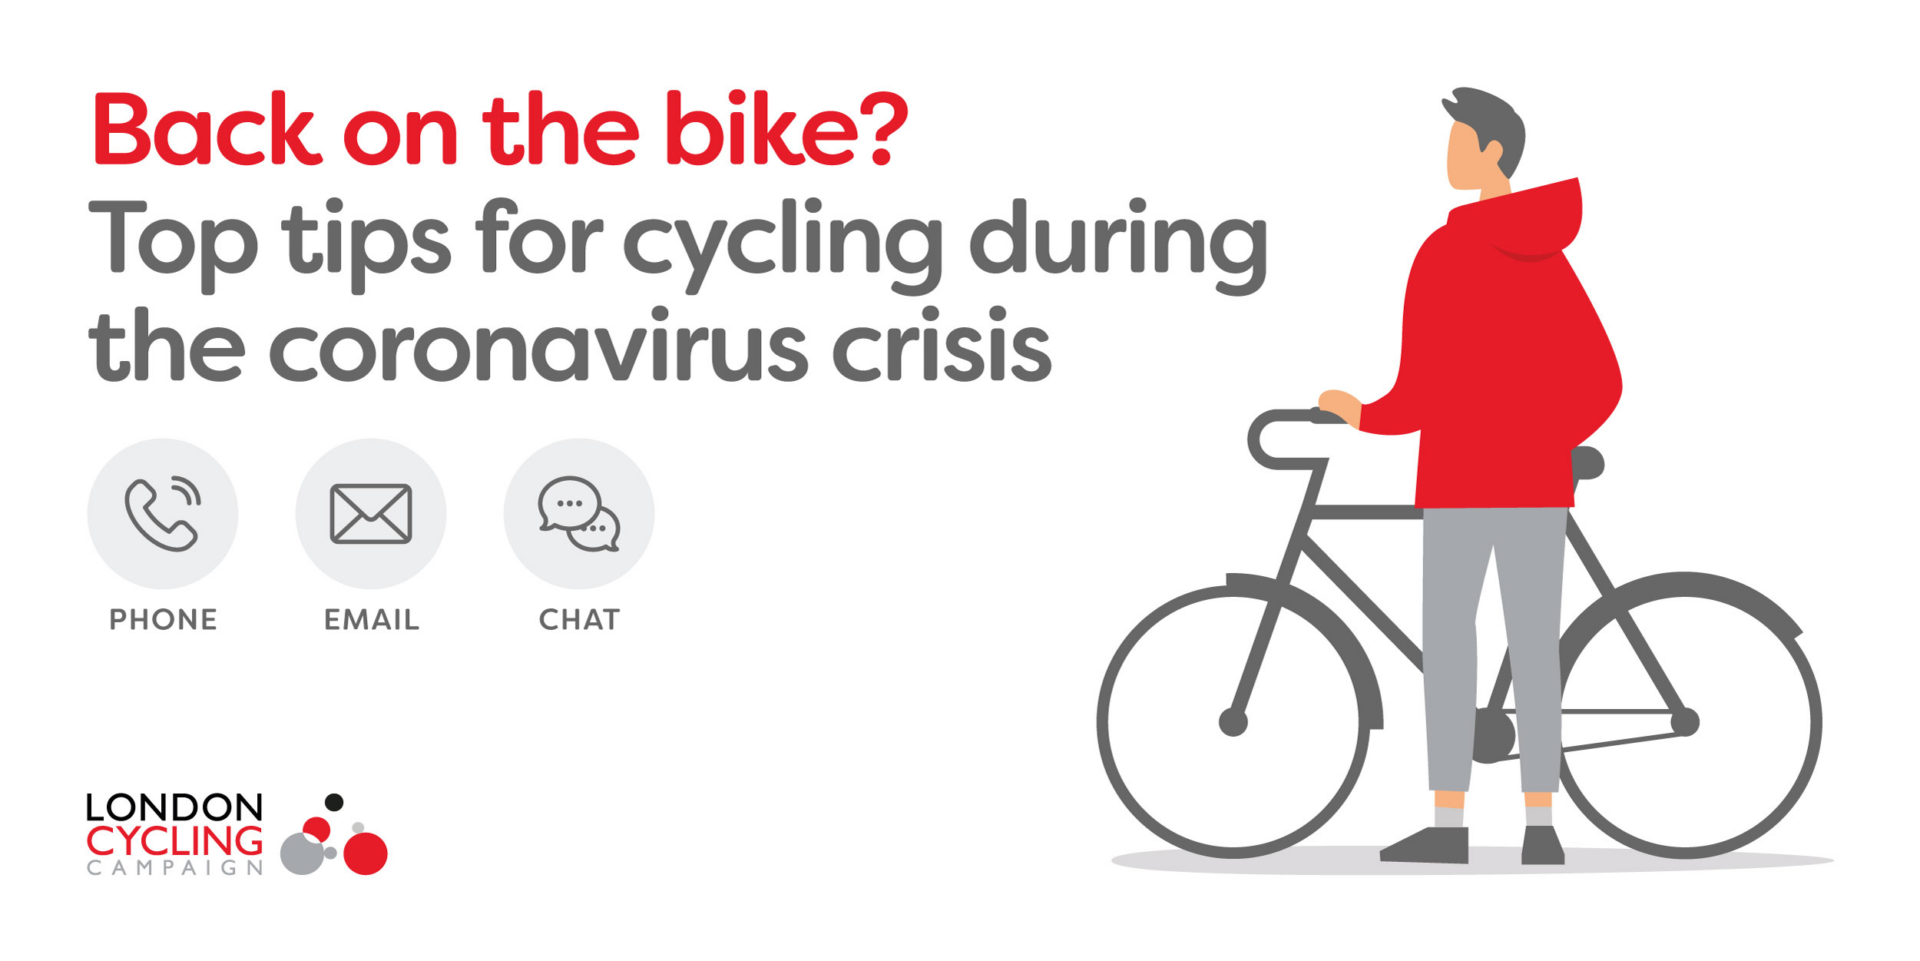 London Cycling Campaign's new live chat service gives cycling advice for essential journeys during COVID-19